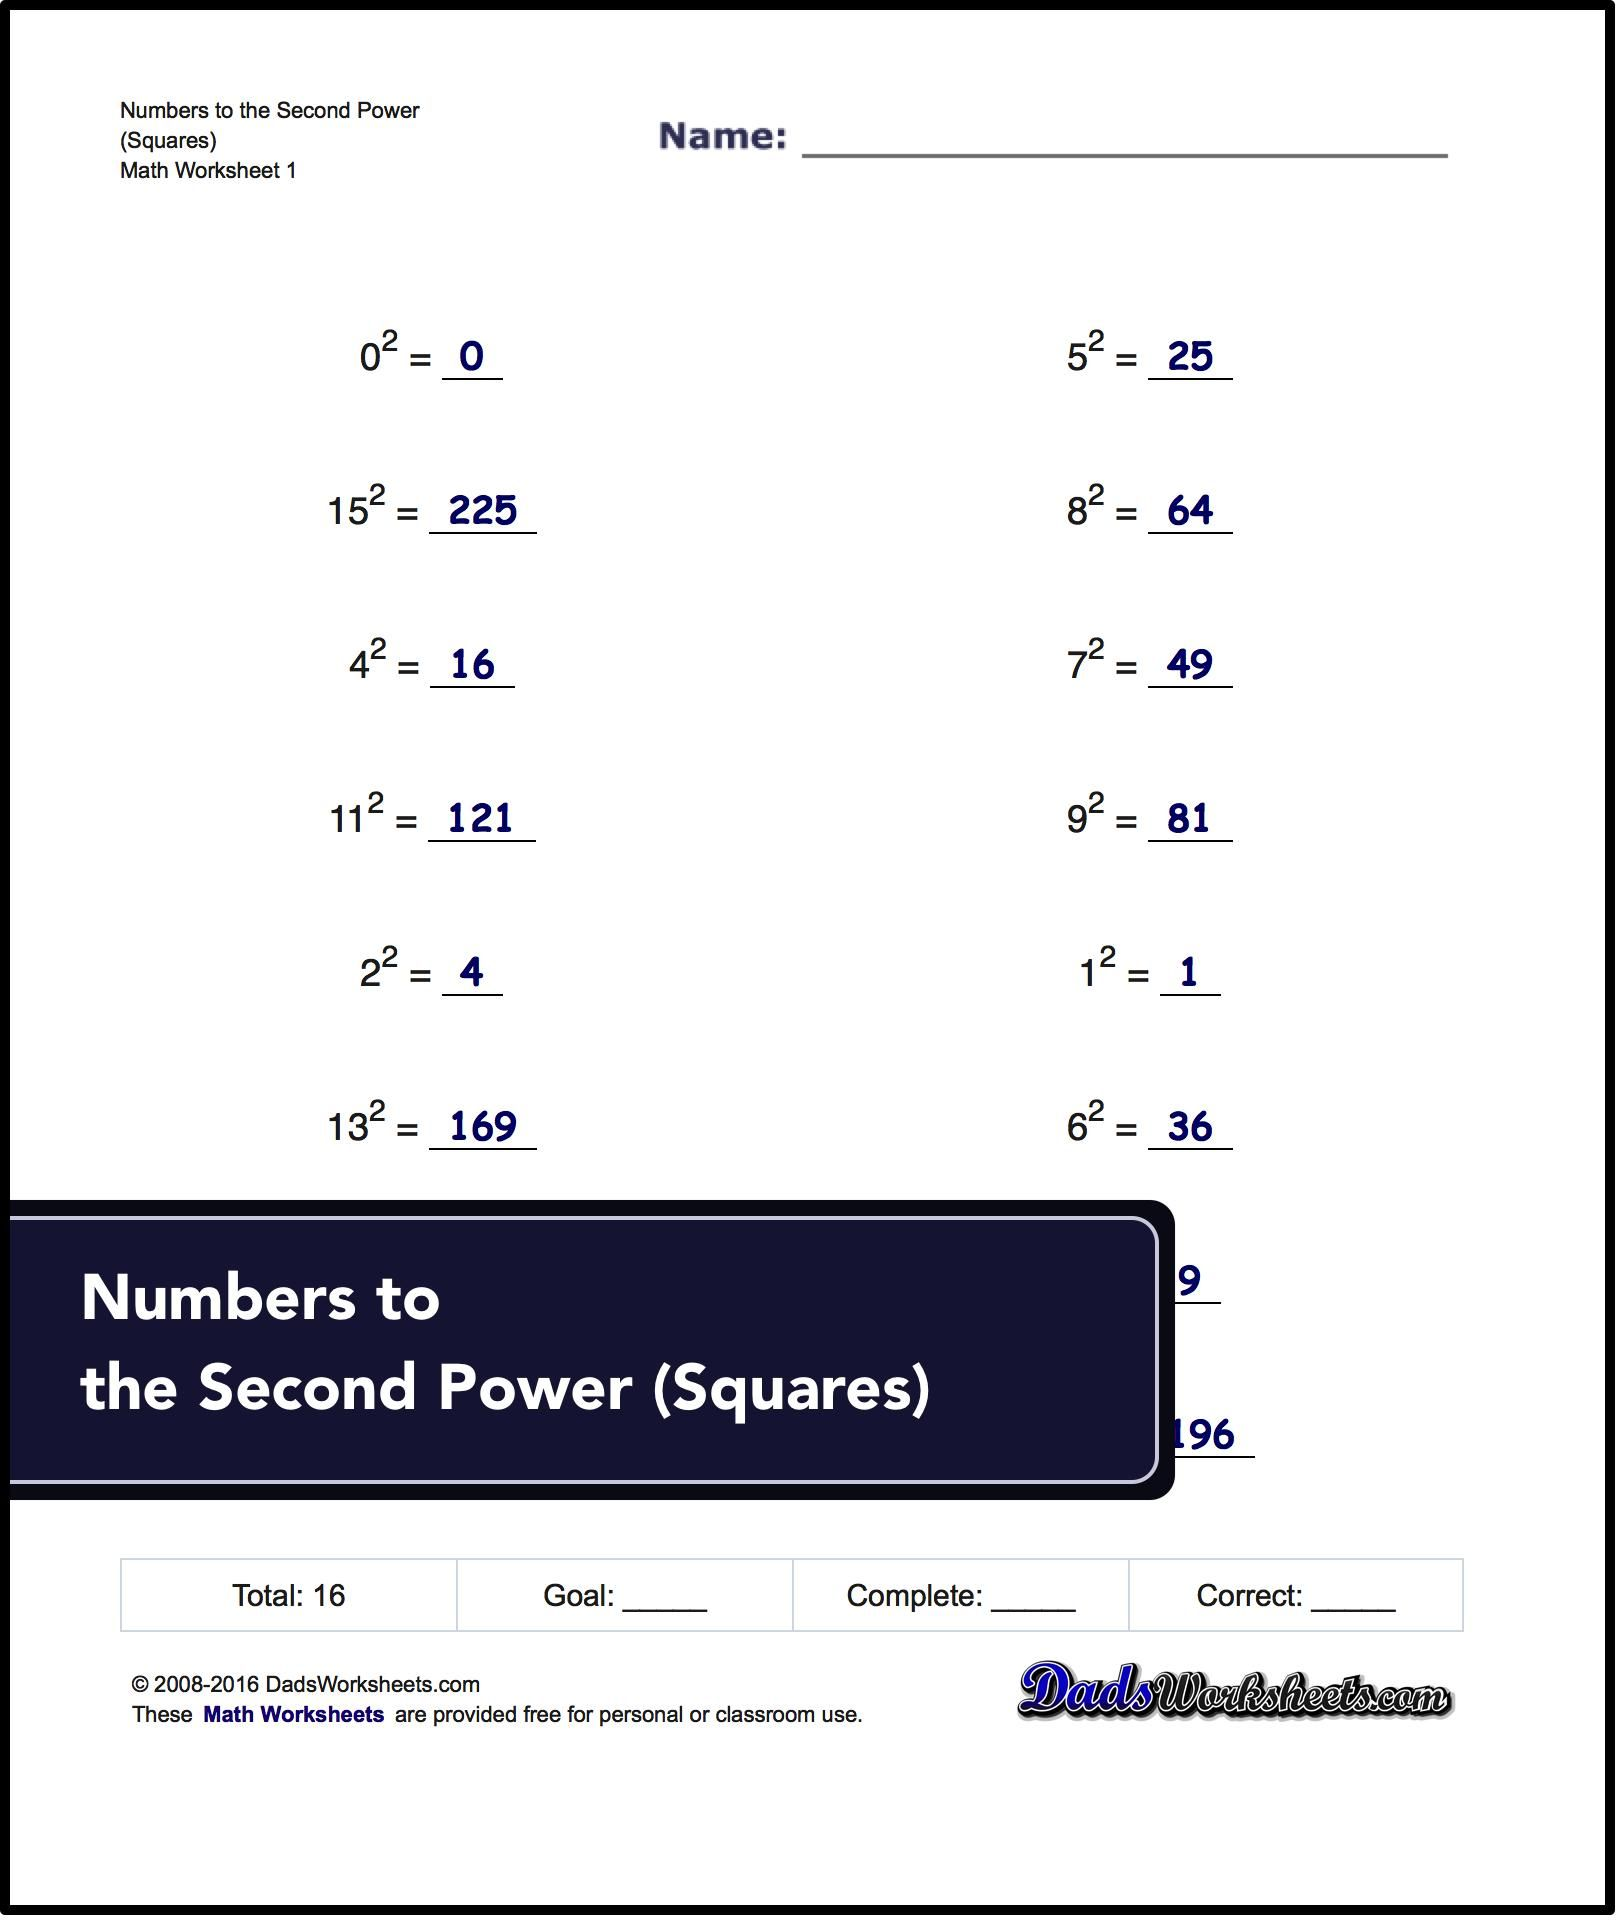 worksheet Integer Exponents Worksheet practice exponents worksheets introducing exponent syntax calculation of simple powers ten and